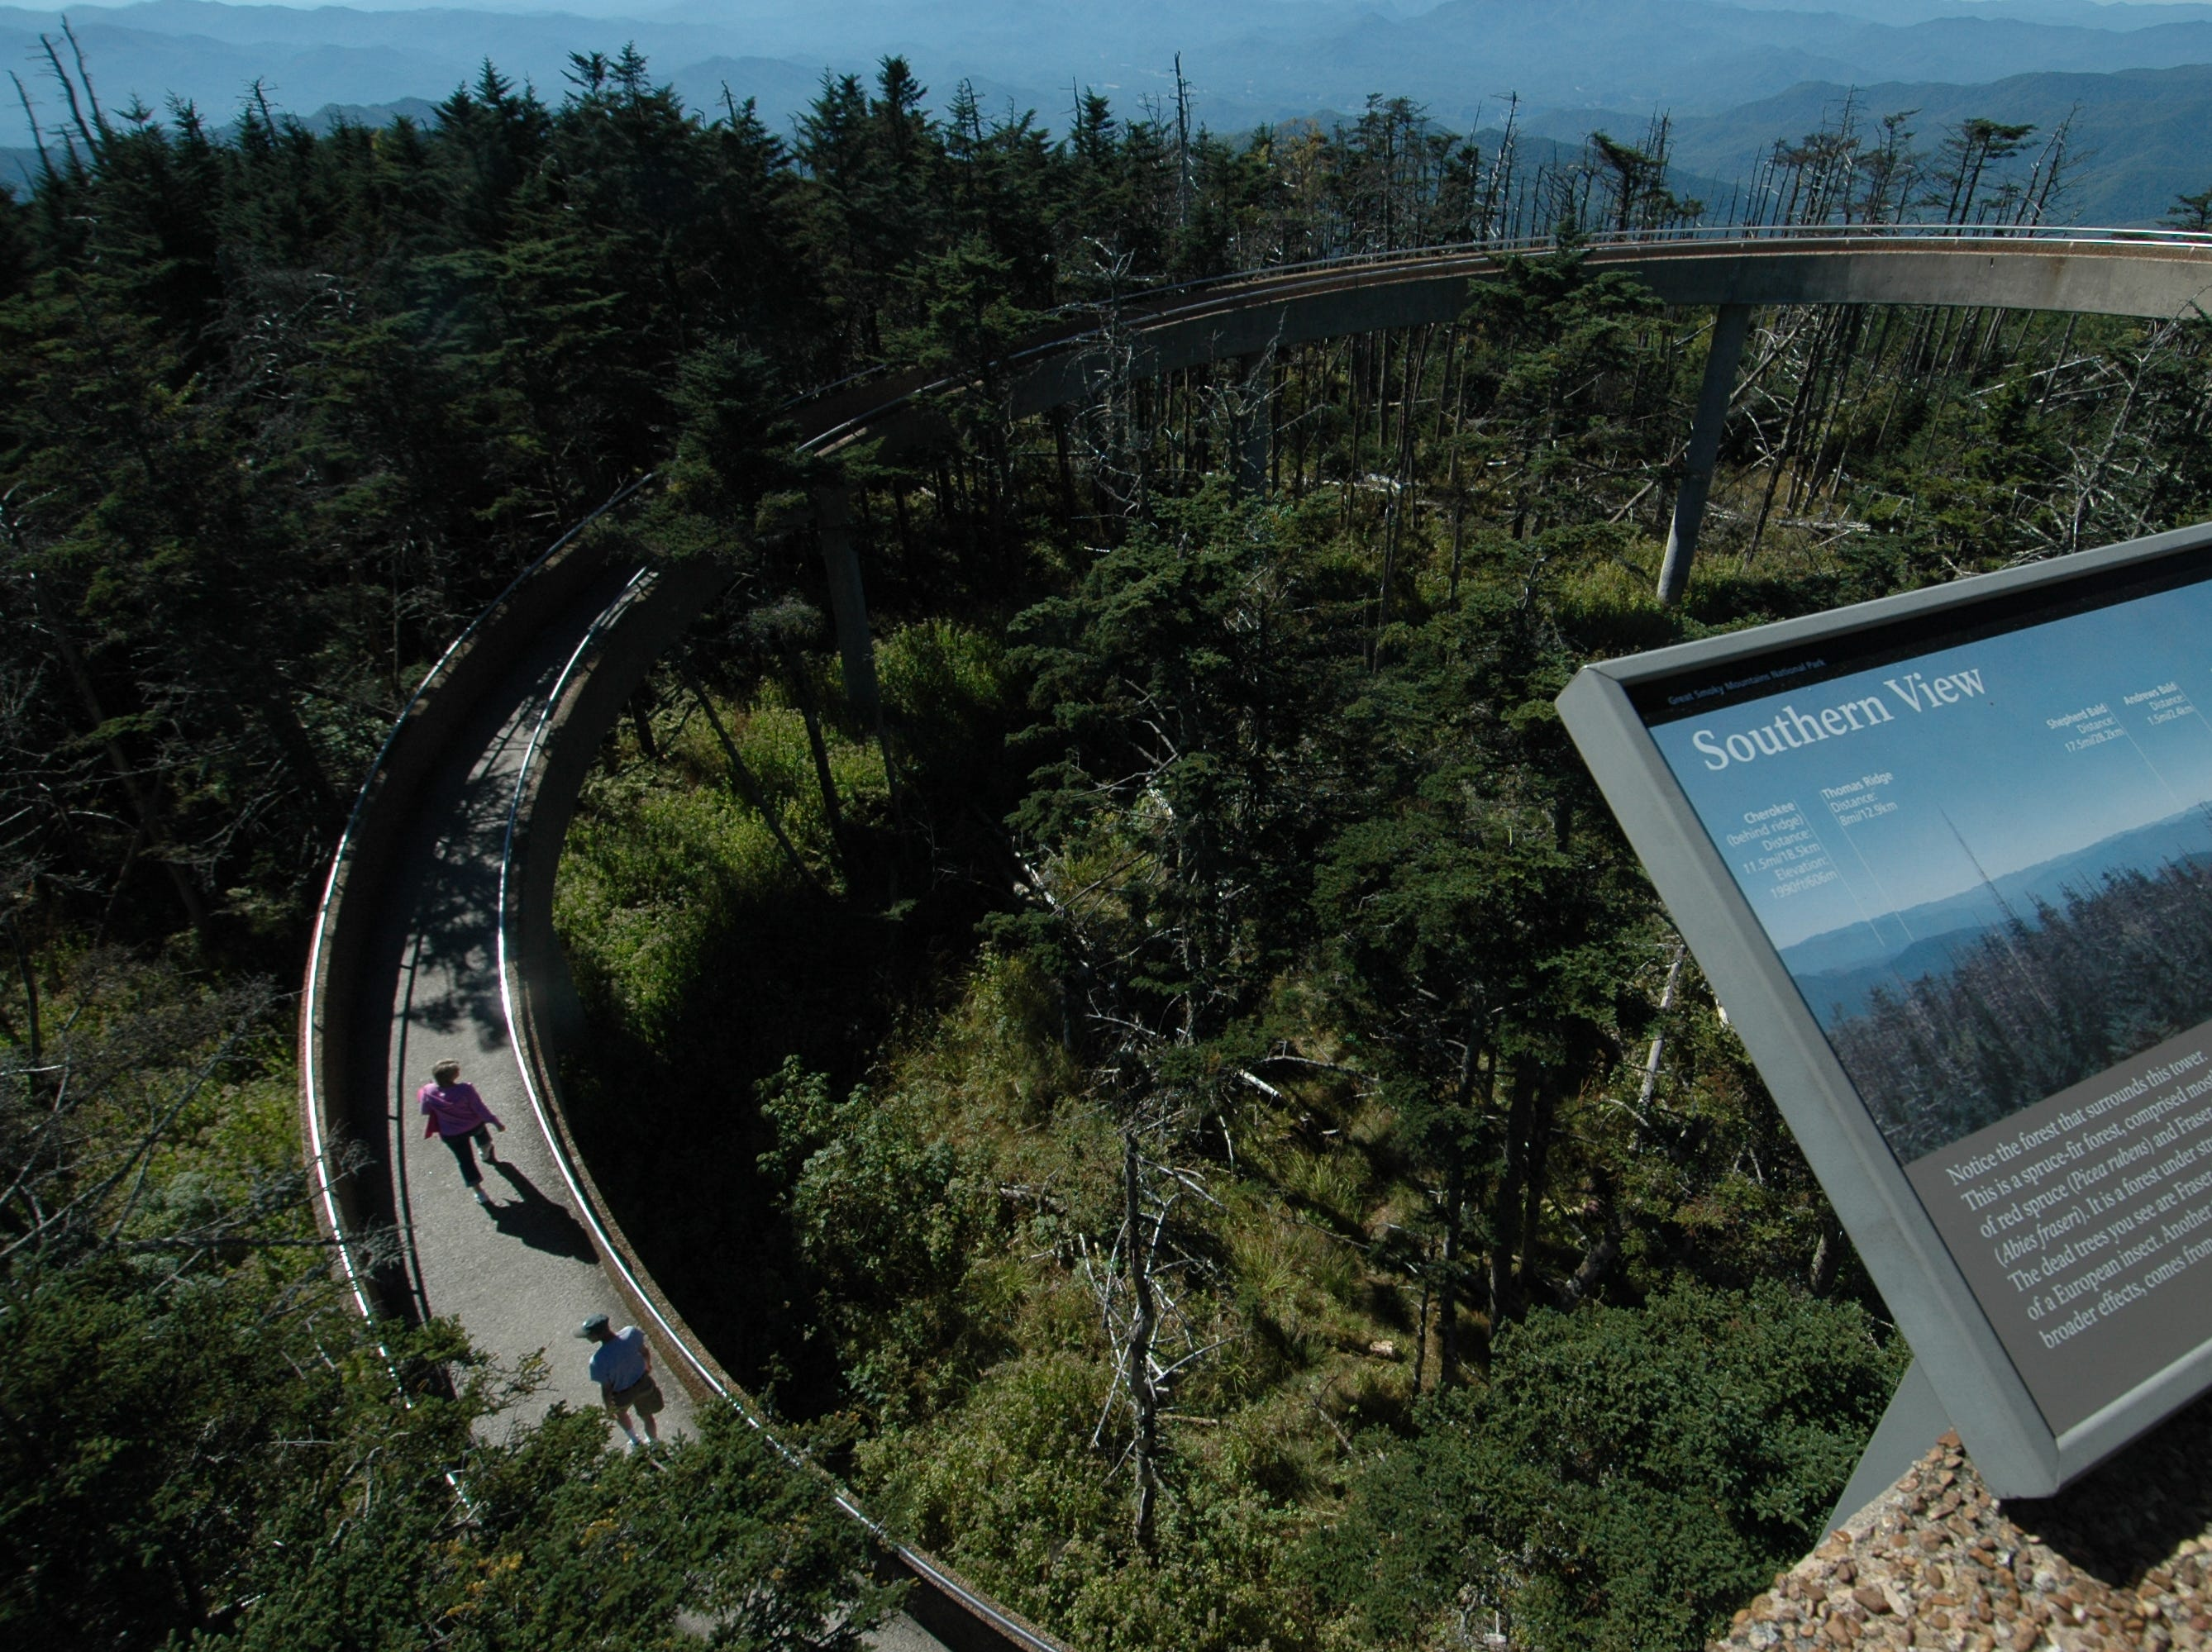 The observation platform and walkway atop Clingmans Dome in the Great Smoky Mountains National Park provides visitors an unequaled 360-degree view of the park and the region. At 6,643 feet above sea-level, it is the highest point in the park and the third-highest peak east of the Mississippi. File photo from Sunday, Sept. 30, 2007.